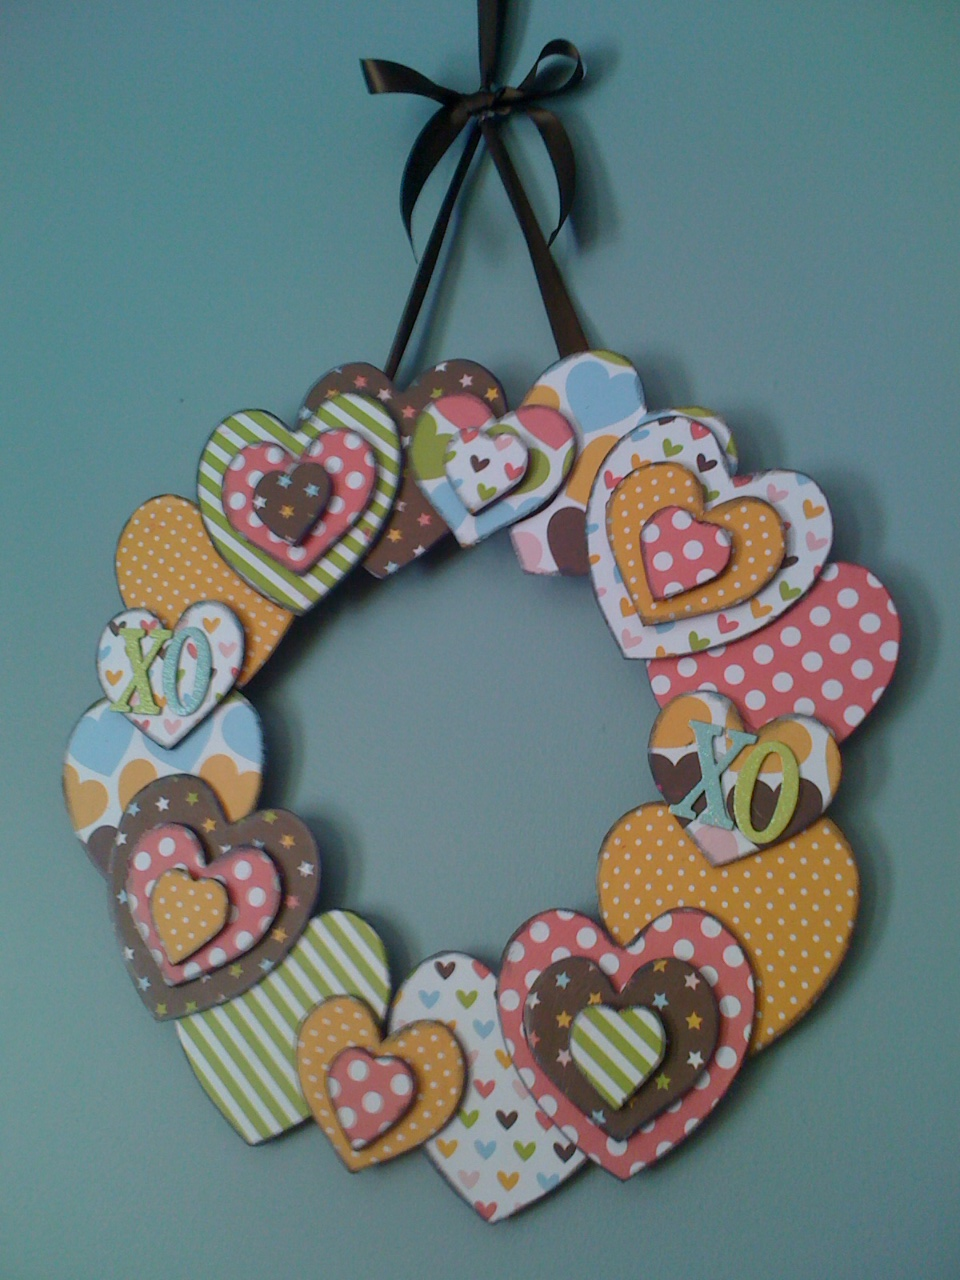 Life love laughter linds valentine 39 s wooden heart for Wooden hearts for crafts